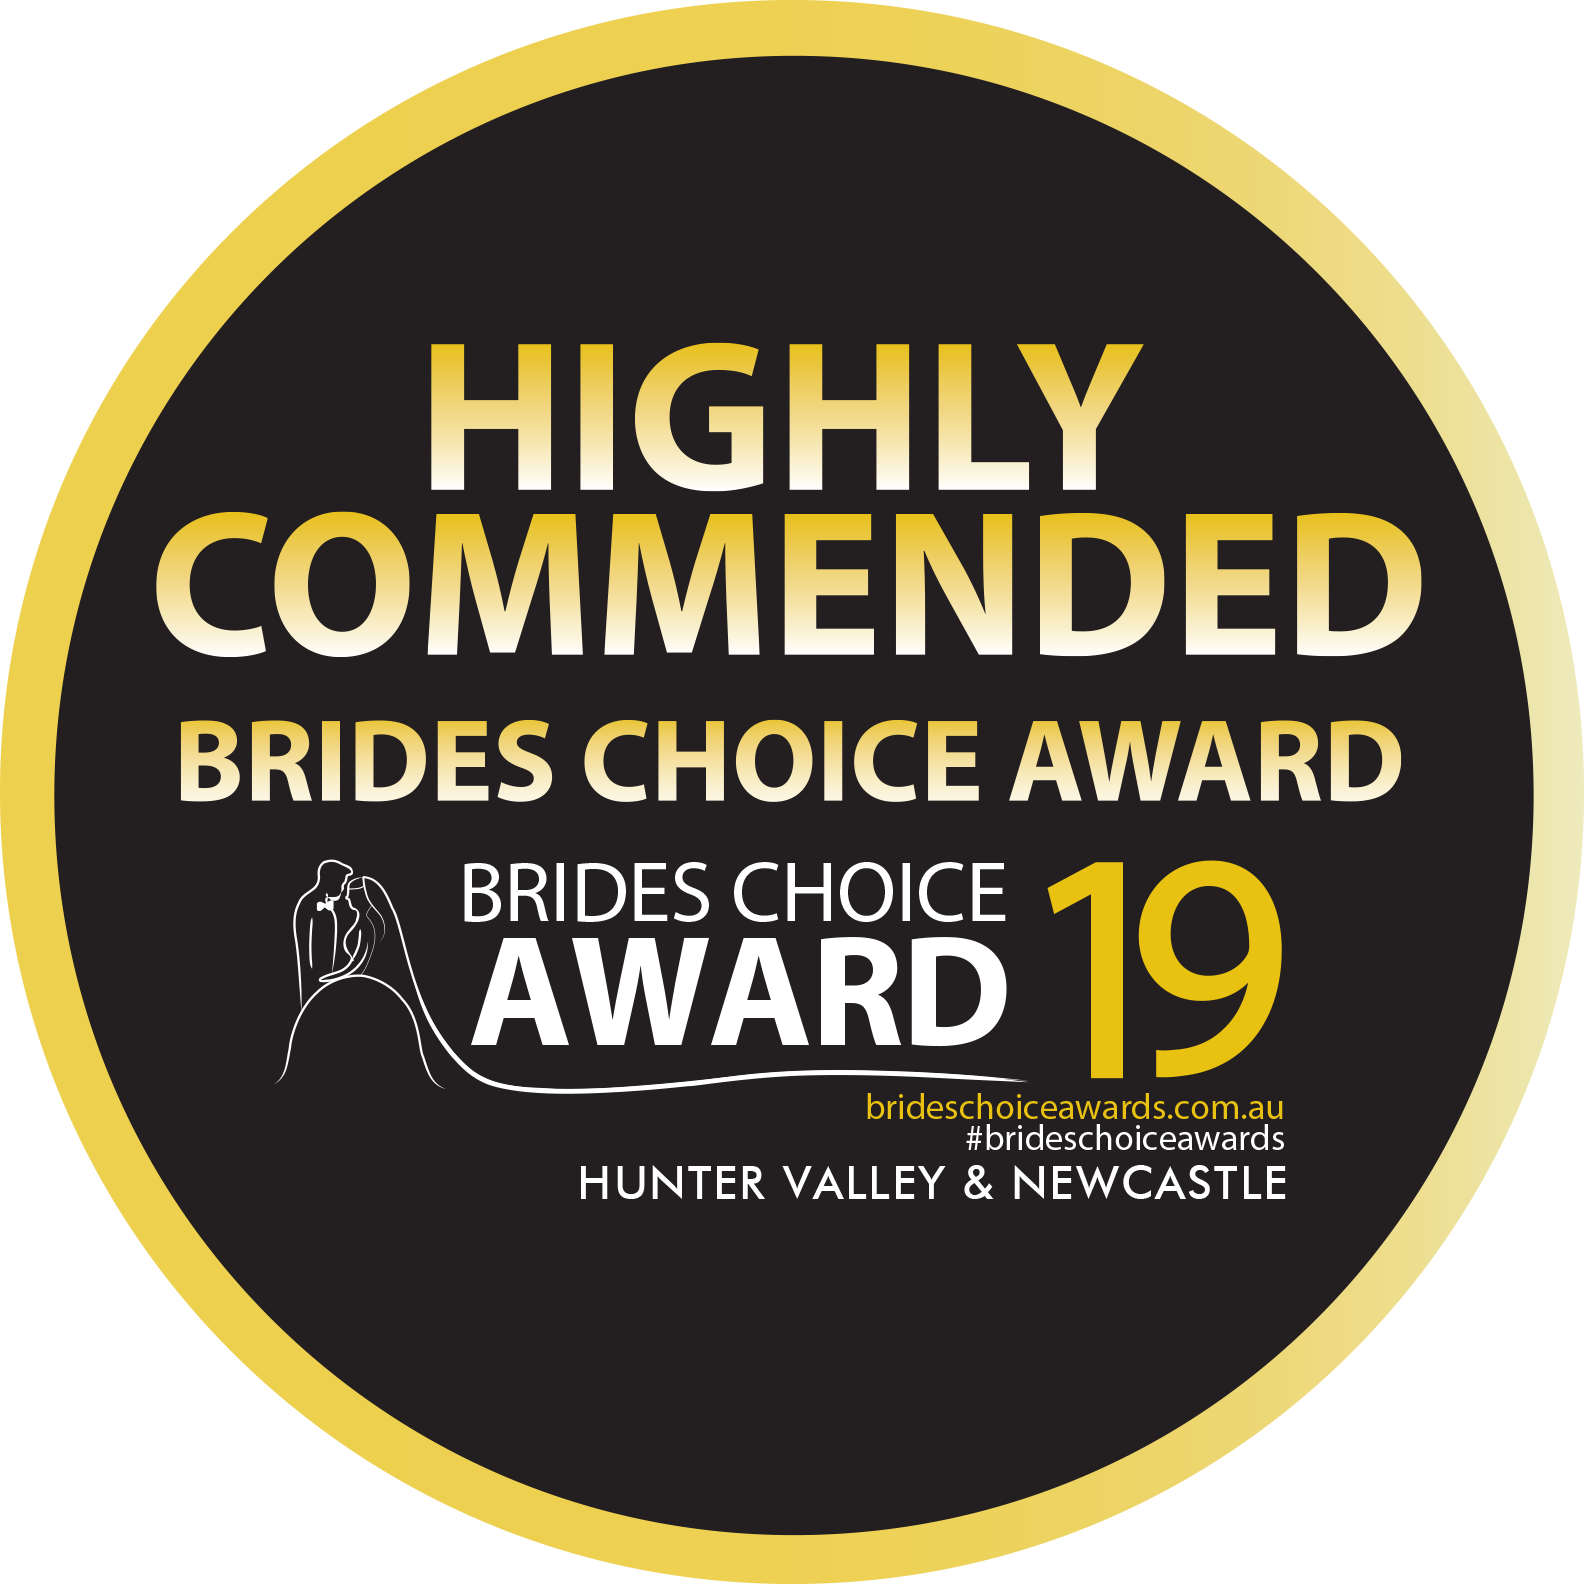 Little red animal care Won Highly commended and top 5 for wedding services in the 2019 brides choice awards - Thank you to all of my clients whom took the time to nominate Little Red Animal Care in the Brides Choice Awards. I am so happy that you love what I do. Thank you, Nadine